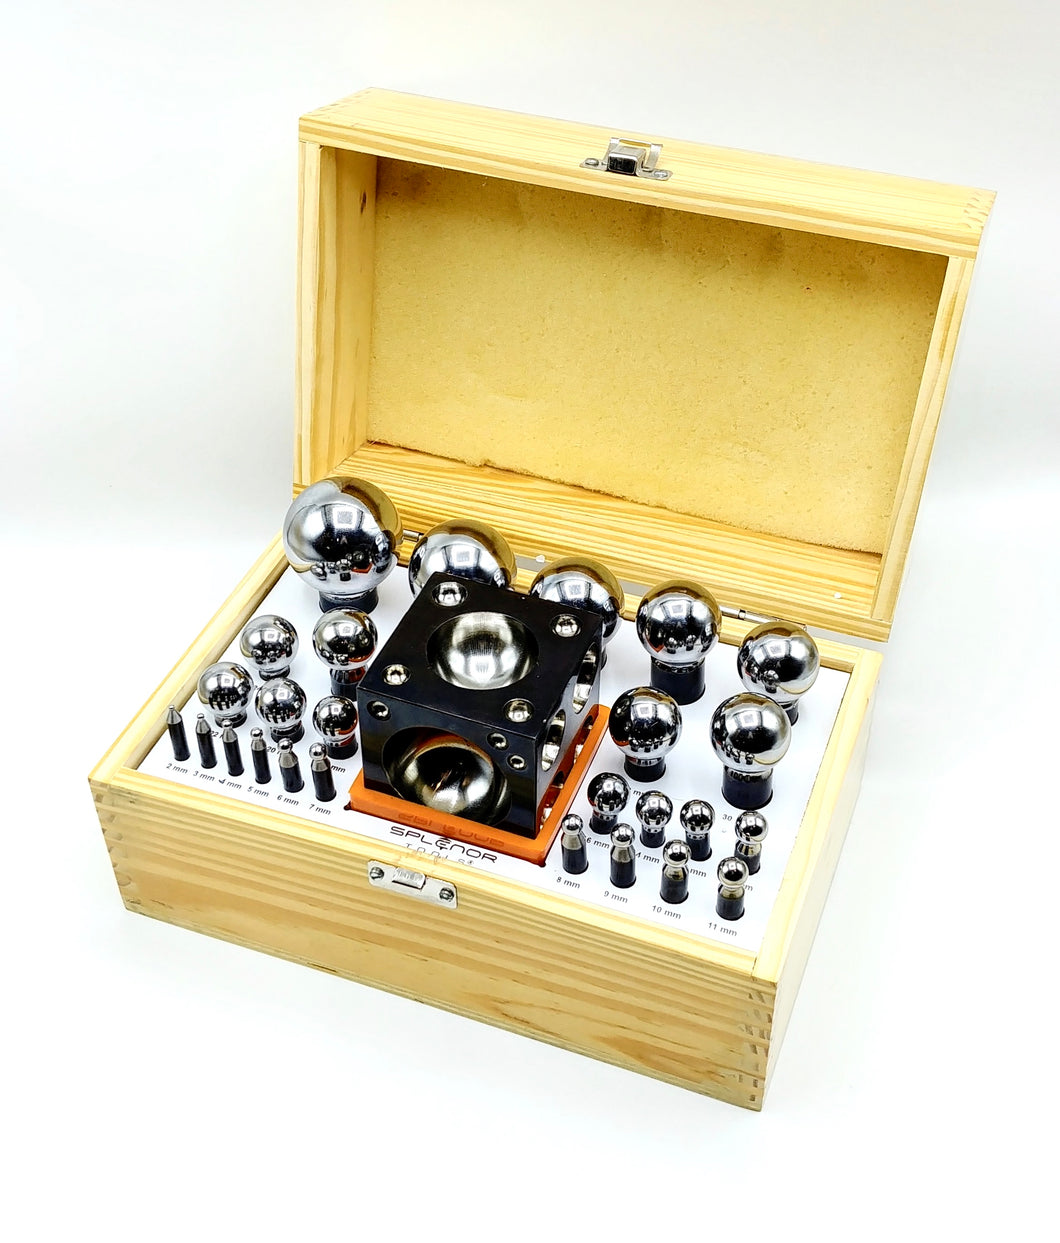 Dapping 26-Punch and Block Set, wooden box